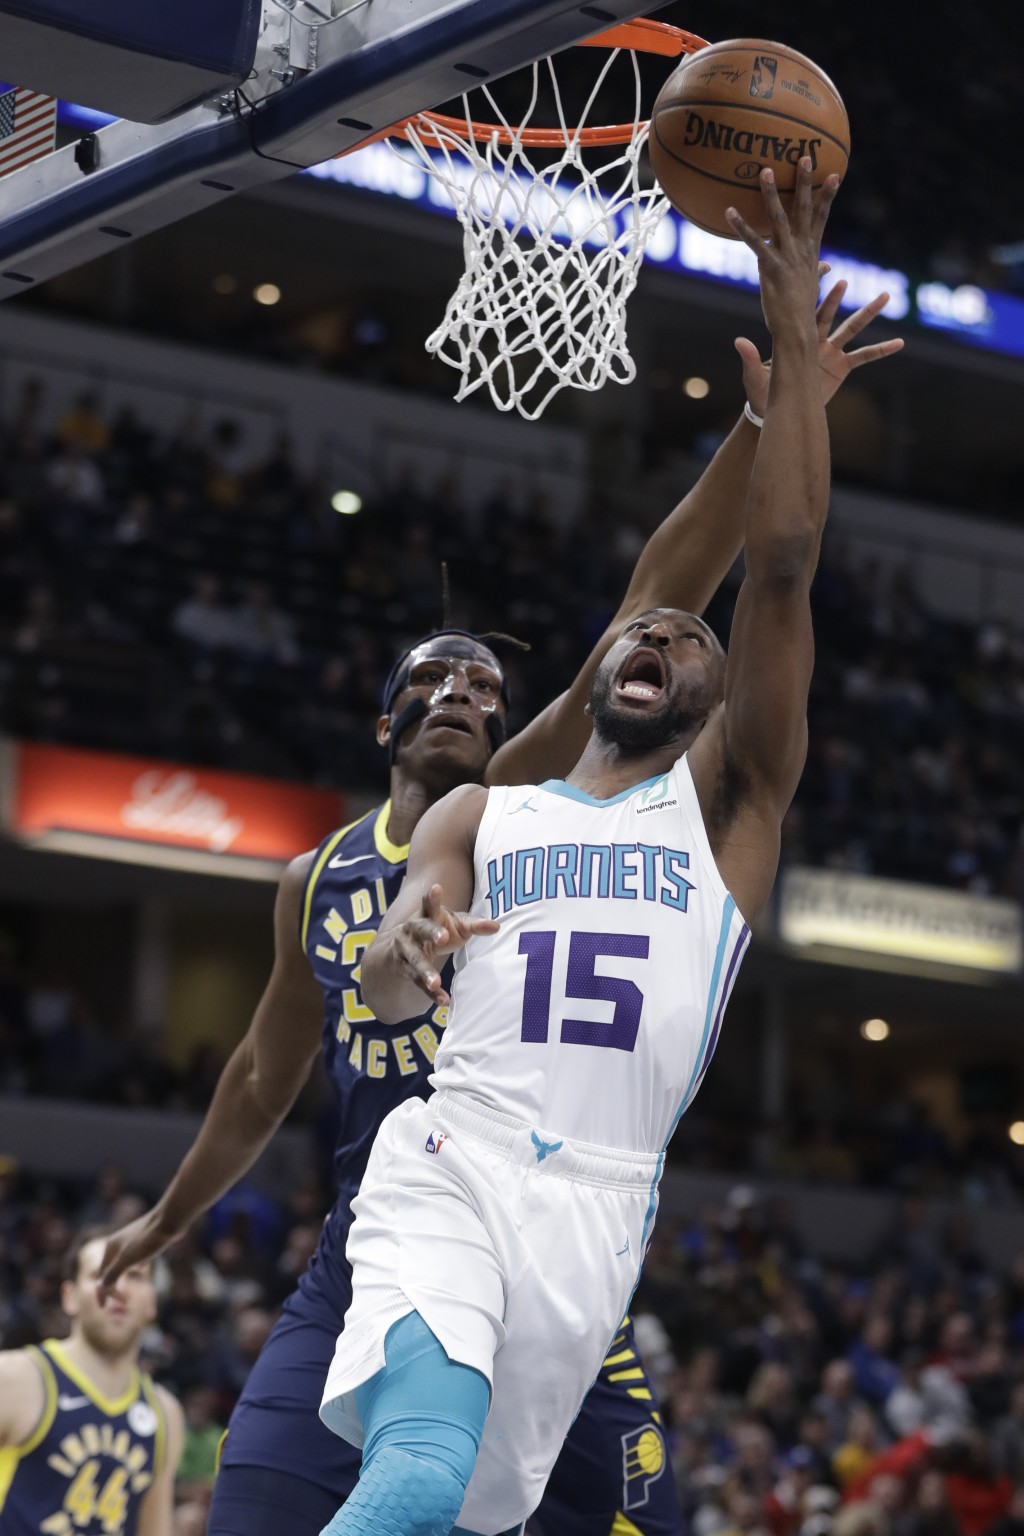 Charlotte Hornets' Kemba Walker, right, puts up a shot against Indiana Pacers' Myles Turner, left, during the first half of an NBA basketball game, Mo